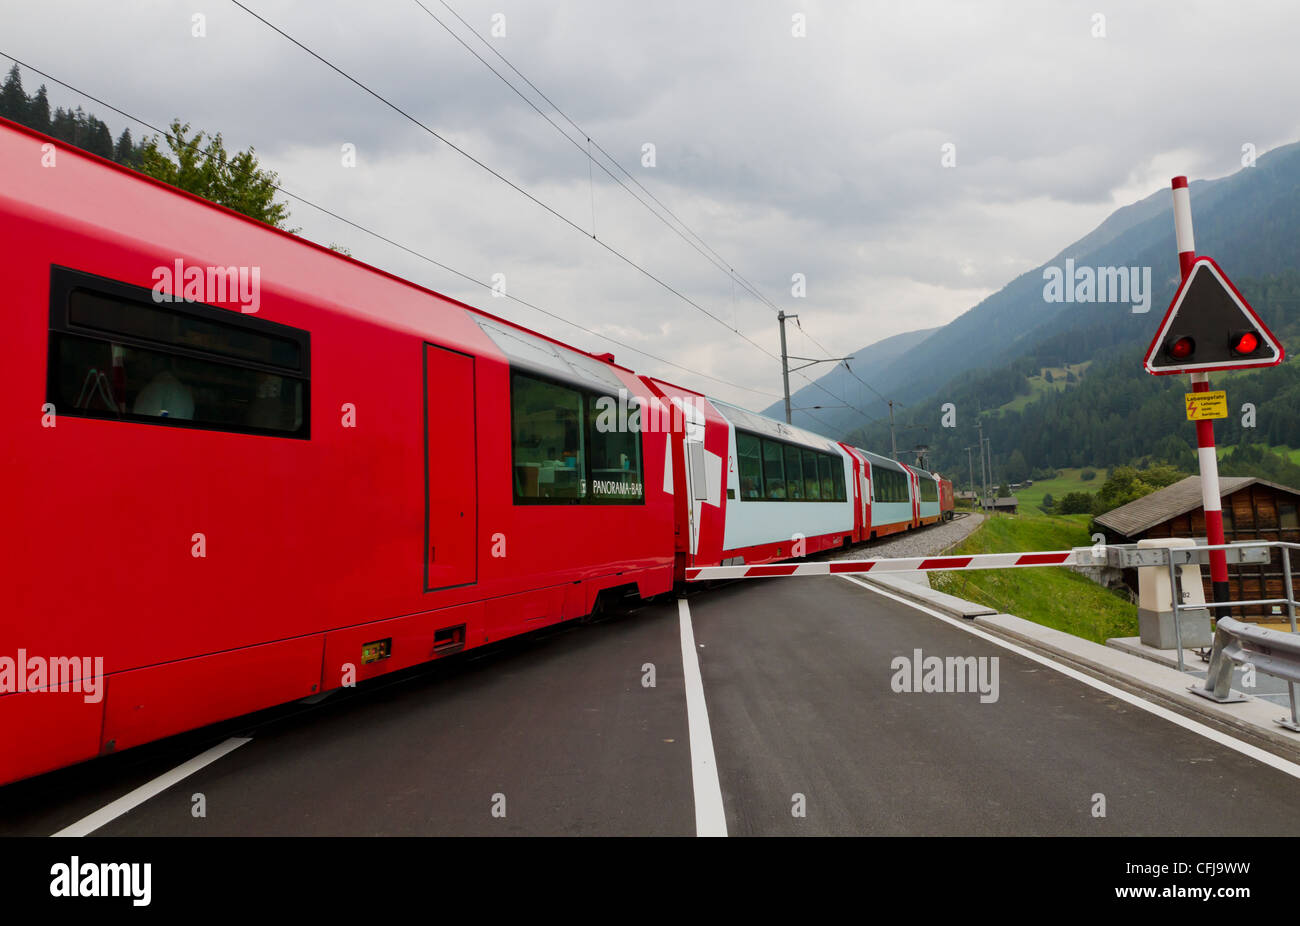 Glacier express train crosses road with closed railway crossing gate, Switzerland - Stock Image